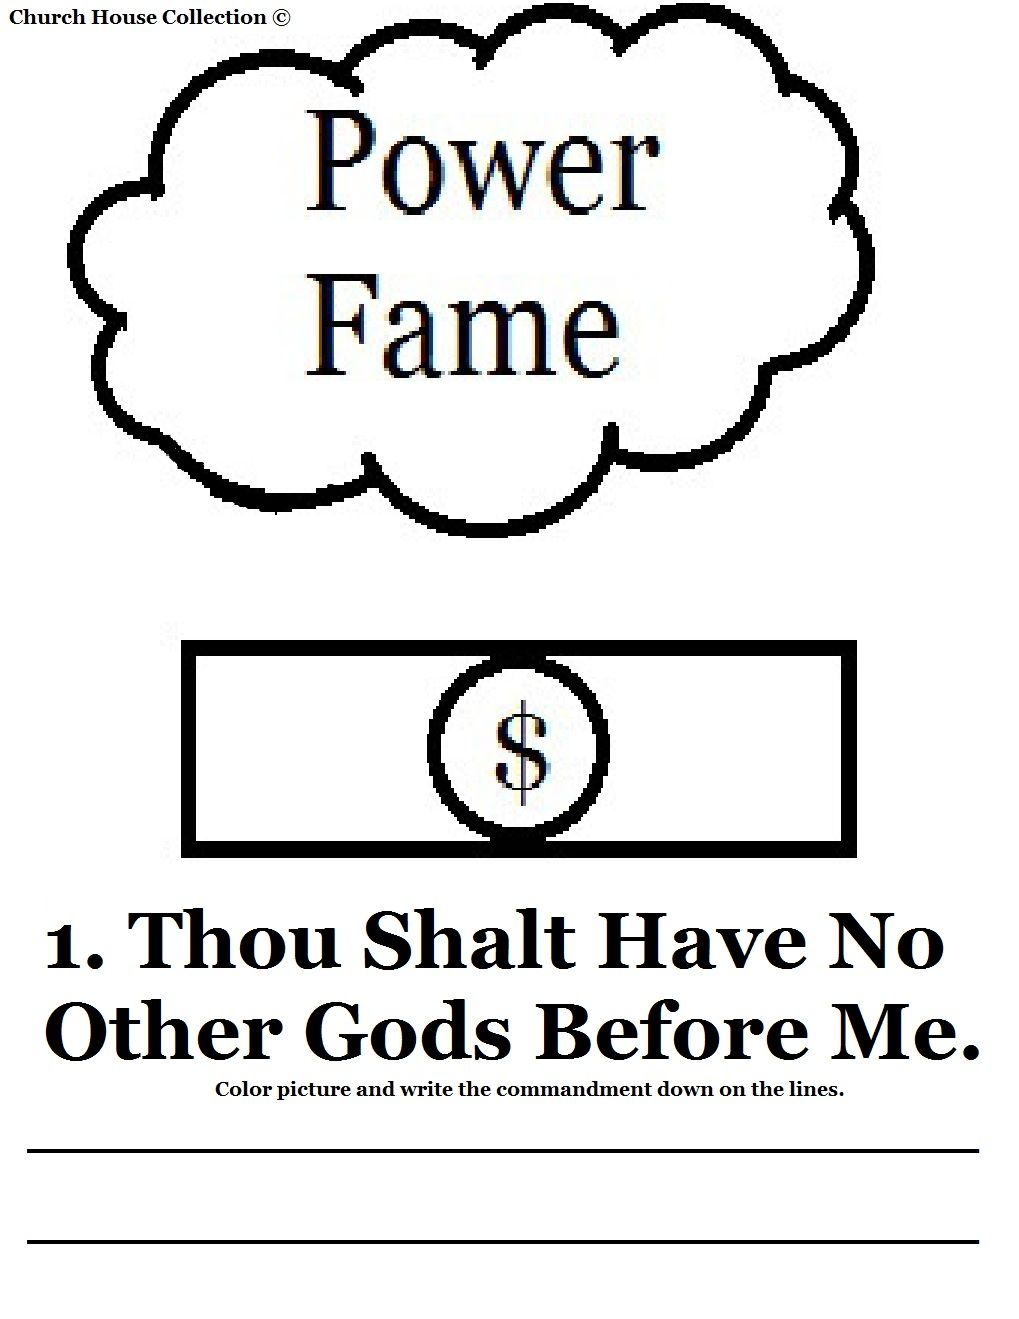 St Commandment    This Is For The First Commandment Of The Ten